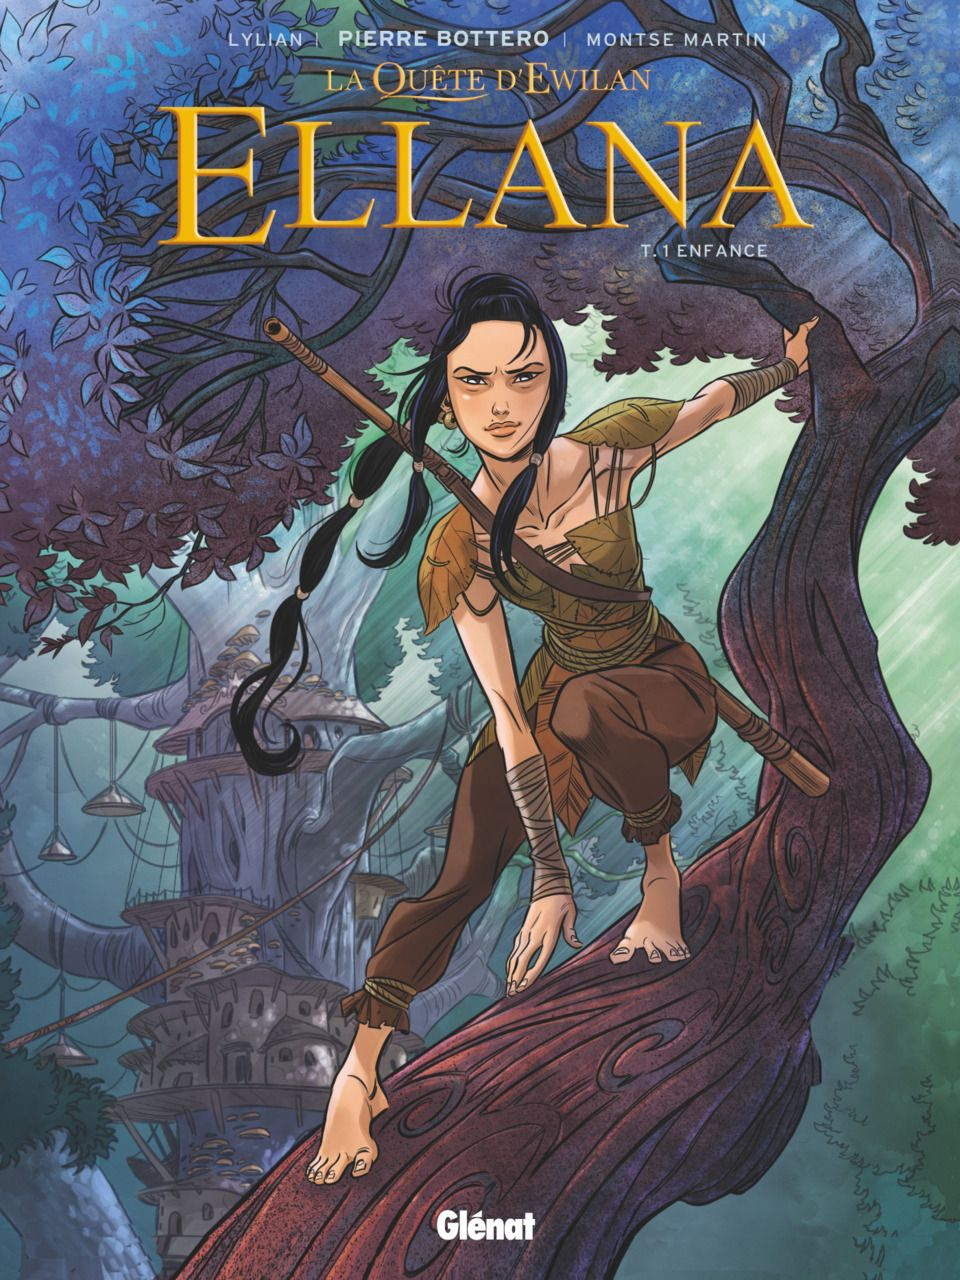 Ellana 1 Enfance Issue Tome Comics Fantasy Character Design